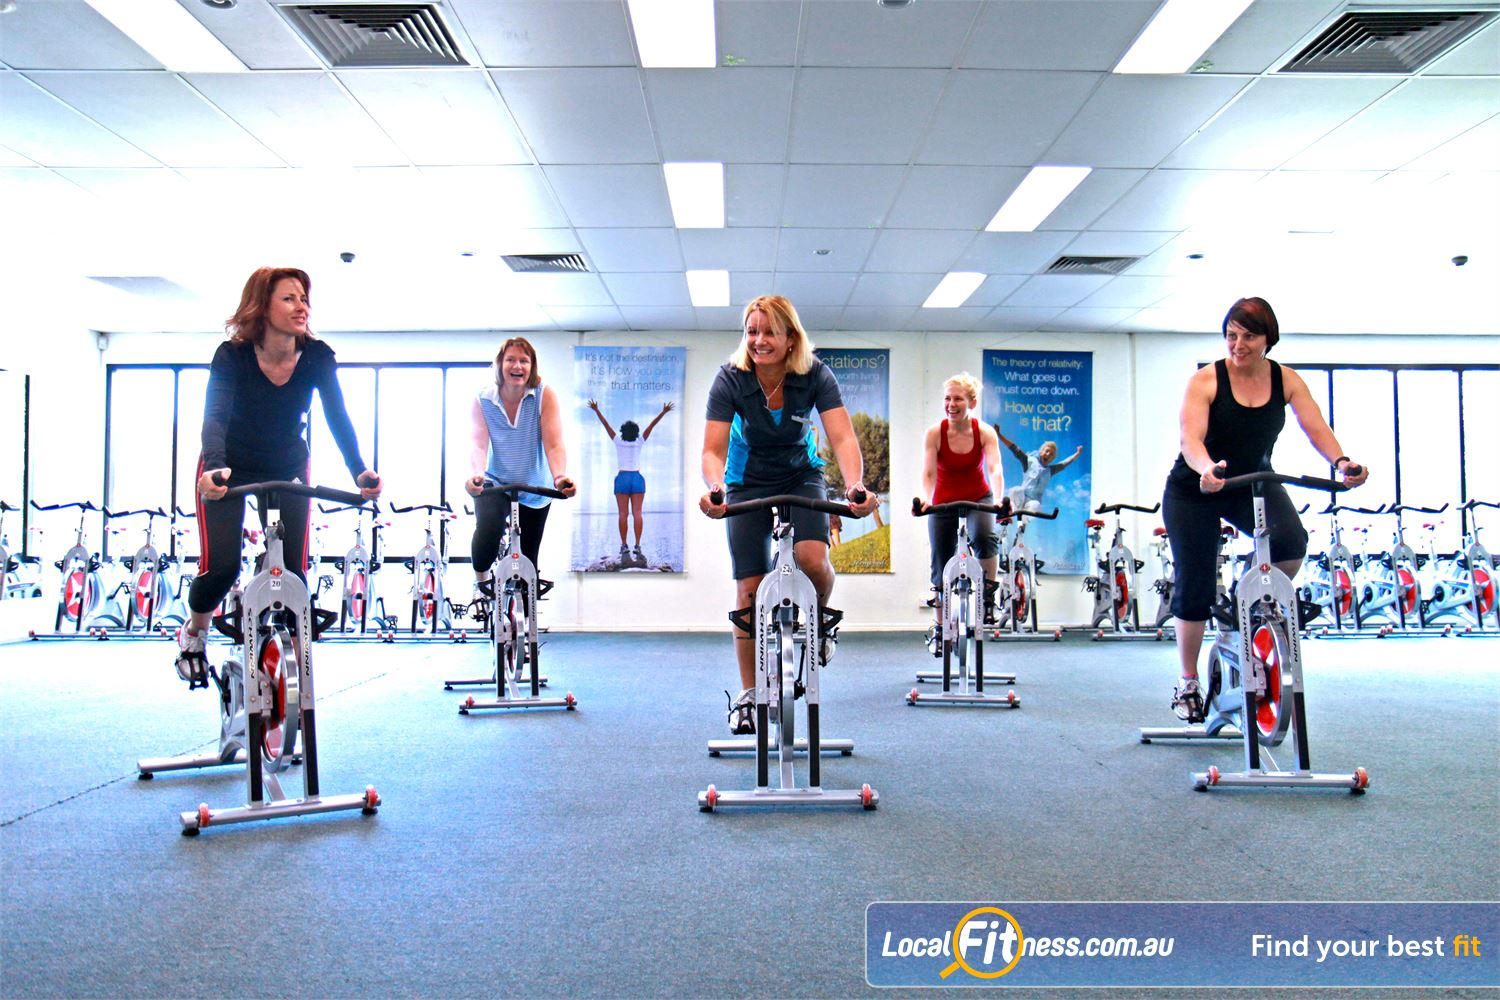 Fernwood Fitness Petrie Music to encourage you to get moving during Petrie spin cycle classes.